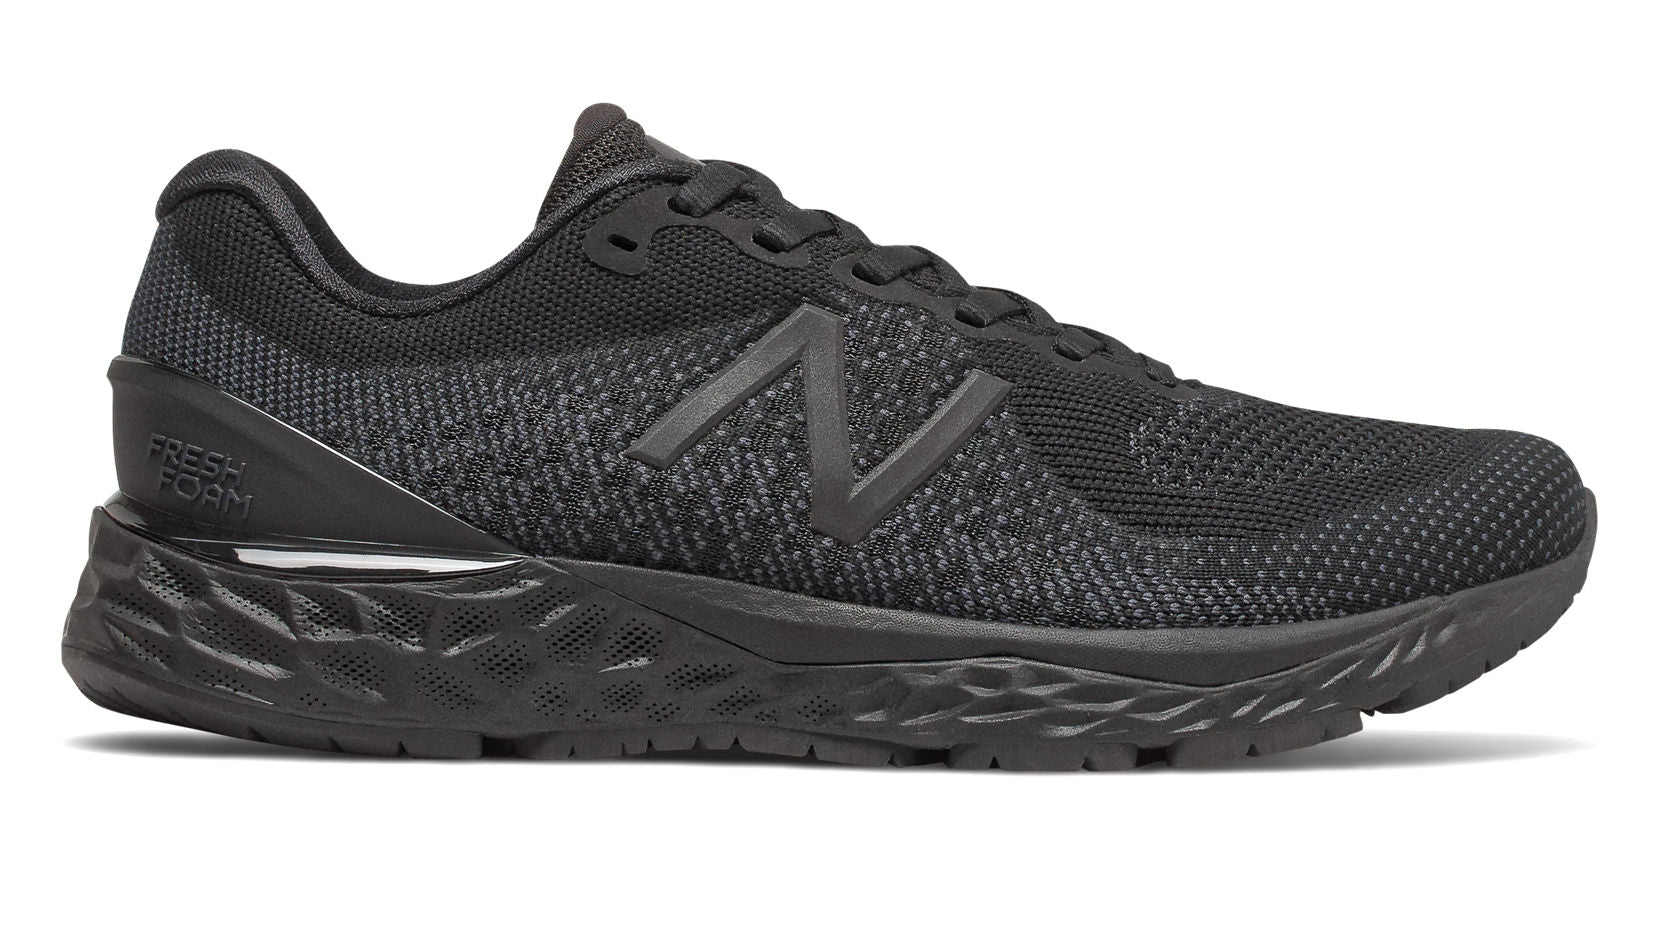 New Balance 880 W880T10 Black Women Running Shoes with Removable Footbed